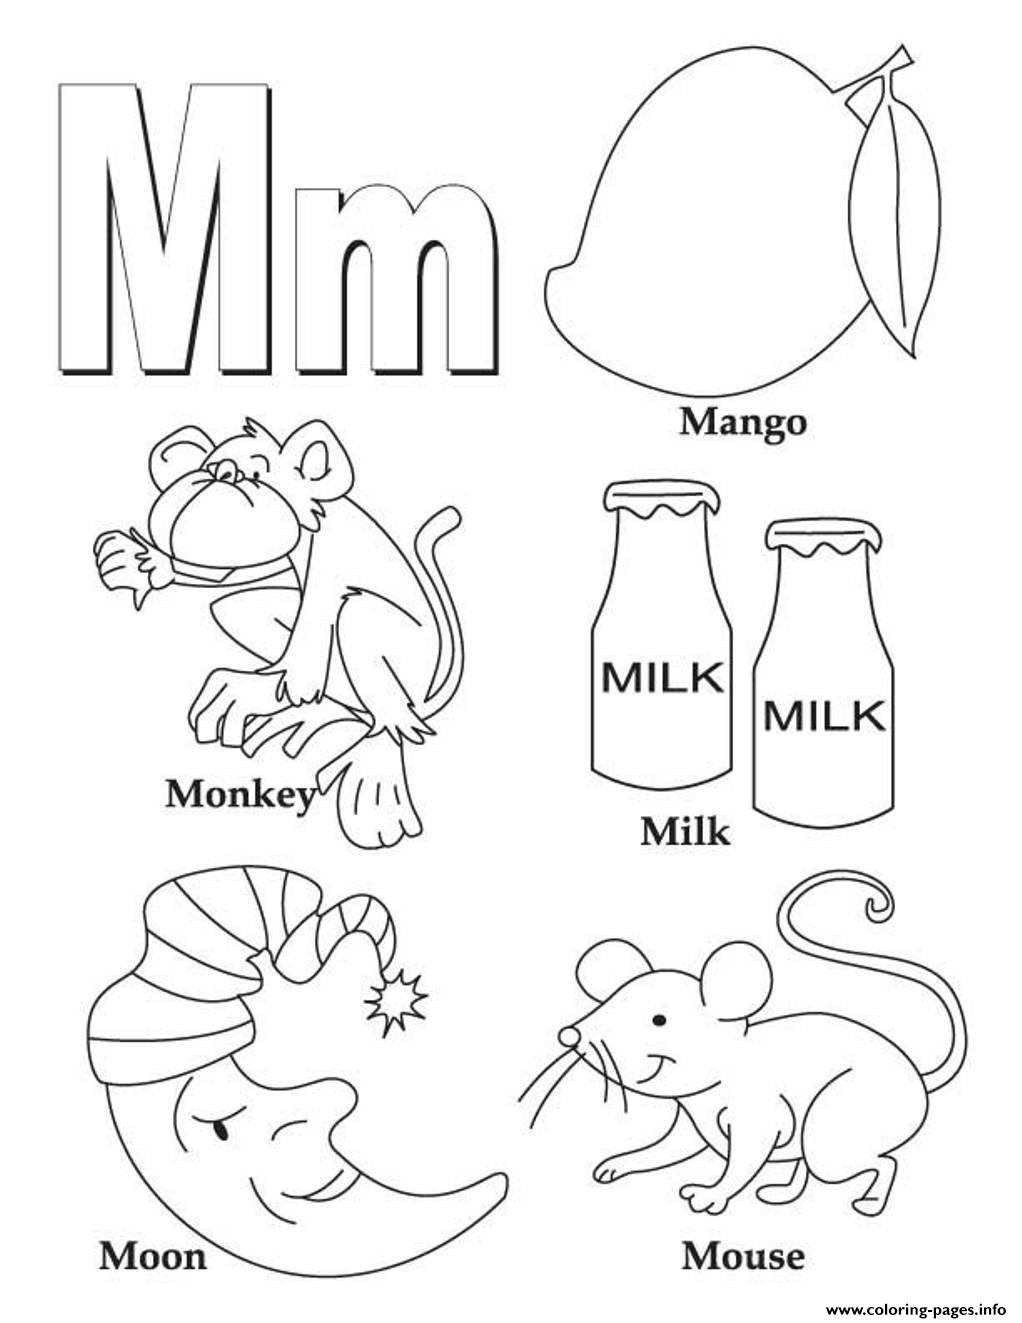 12 Best pictures about alphabet sounds coloring pages at www